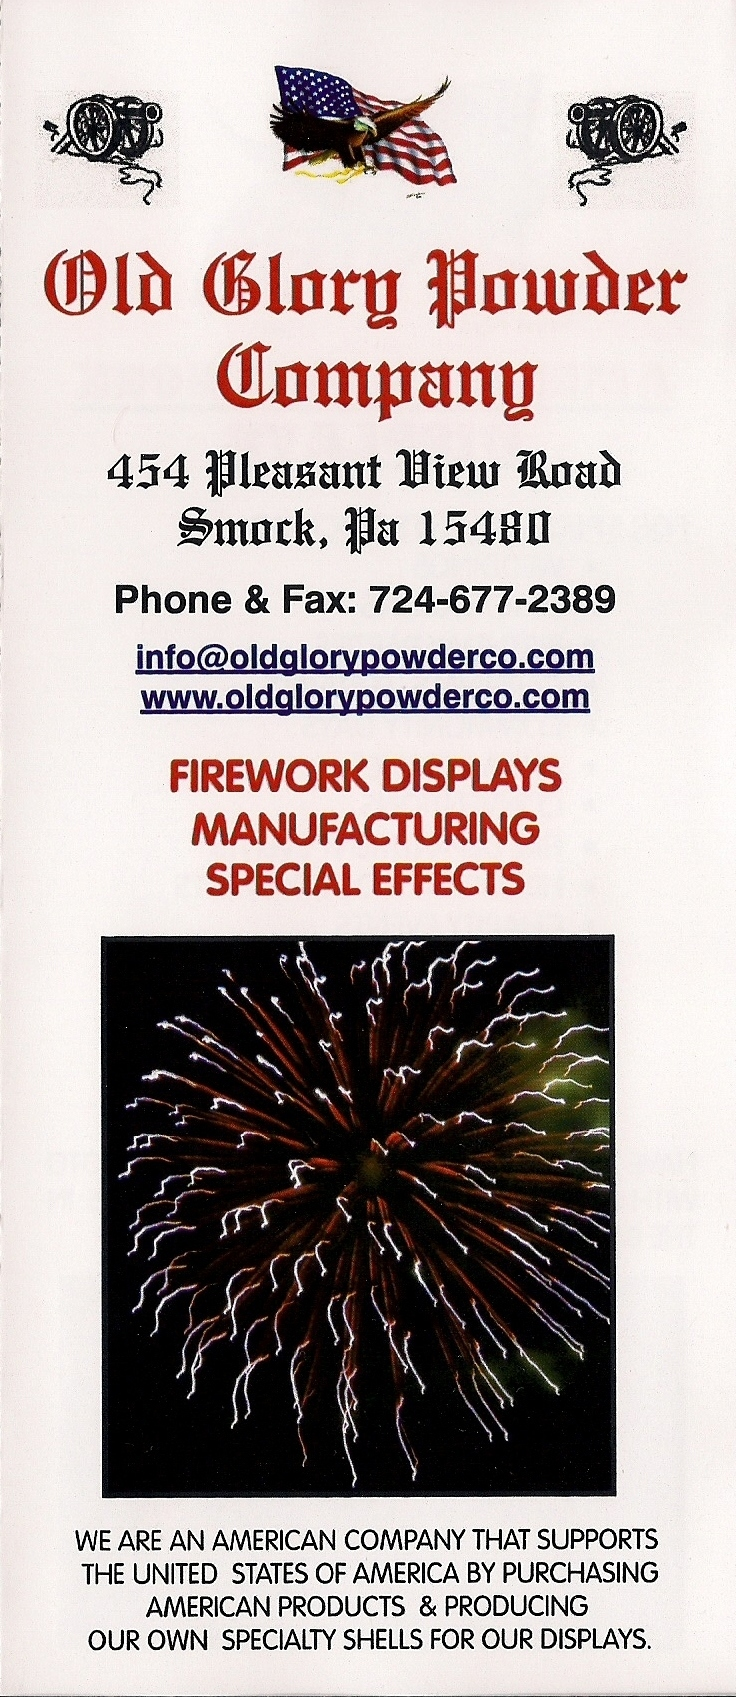 Brochure for Old Glory Powder Company to explain firework displays